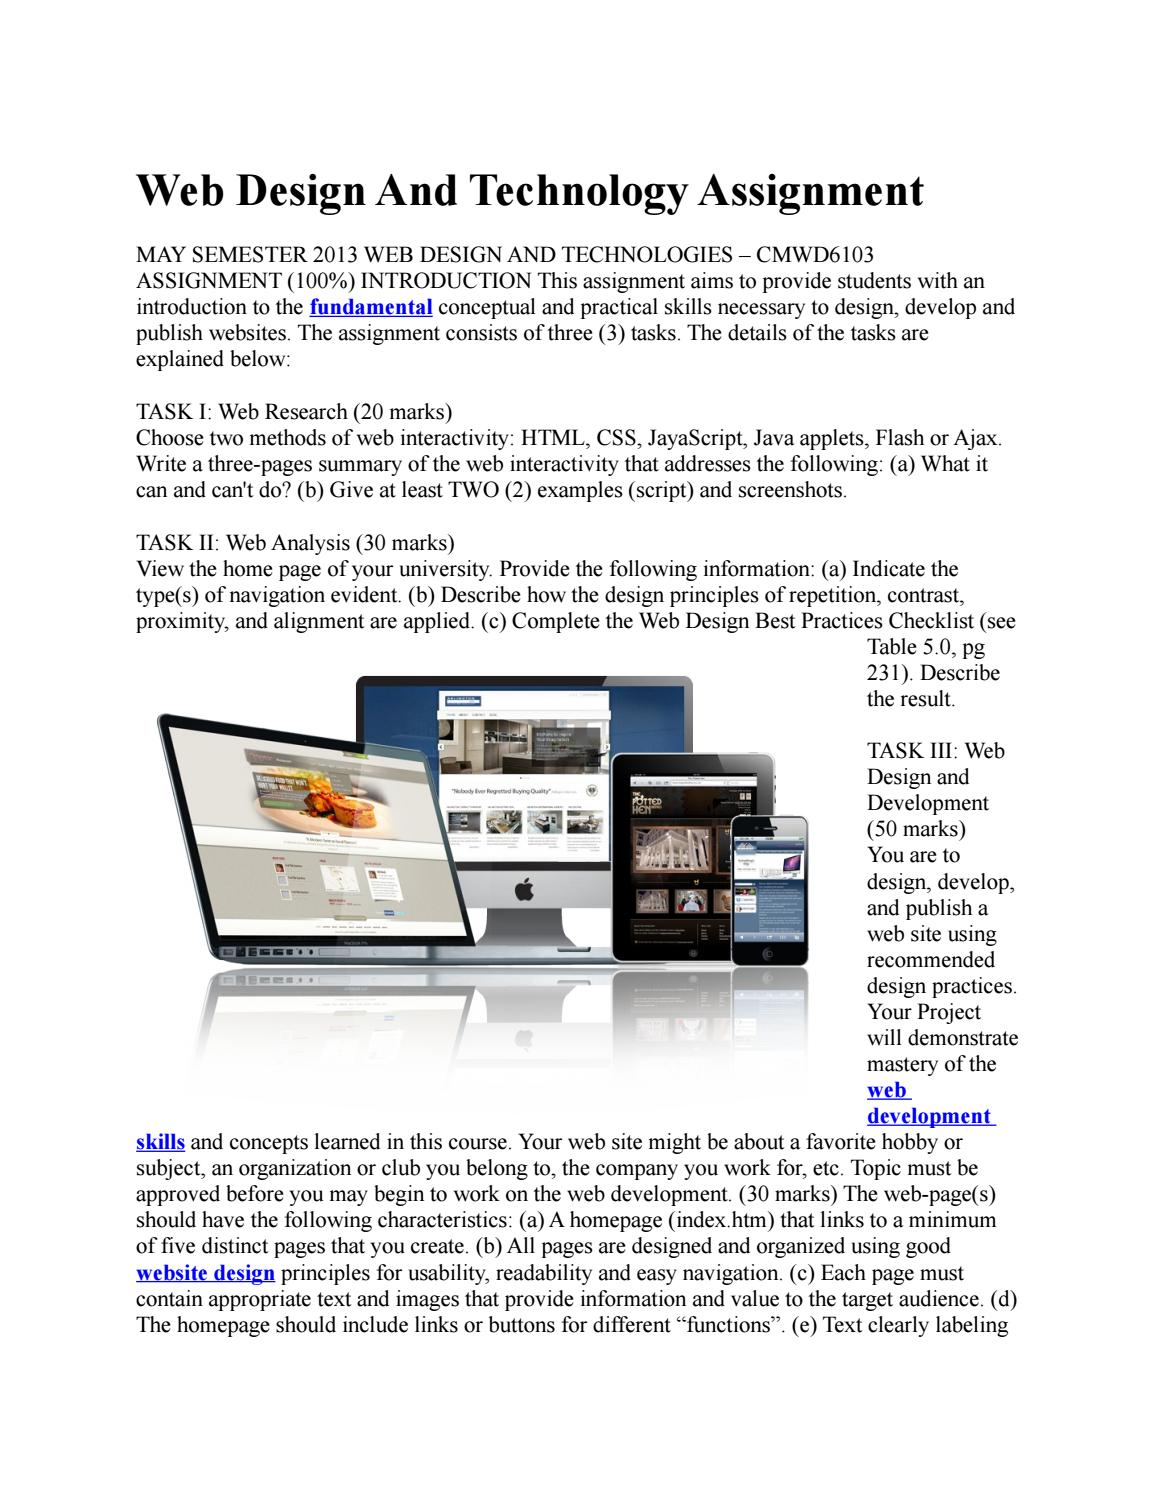 Web Design And Technology Assignment Cheapassignmenthelp Com Au By Cheap Assignment Help Issuu